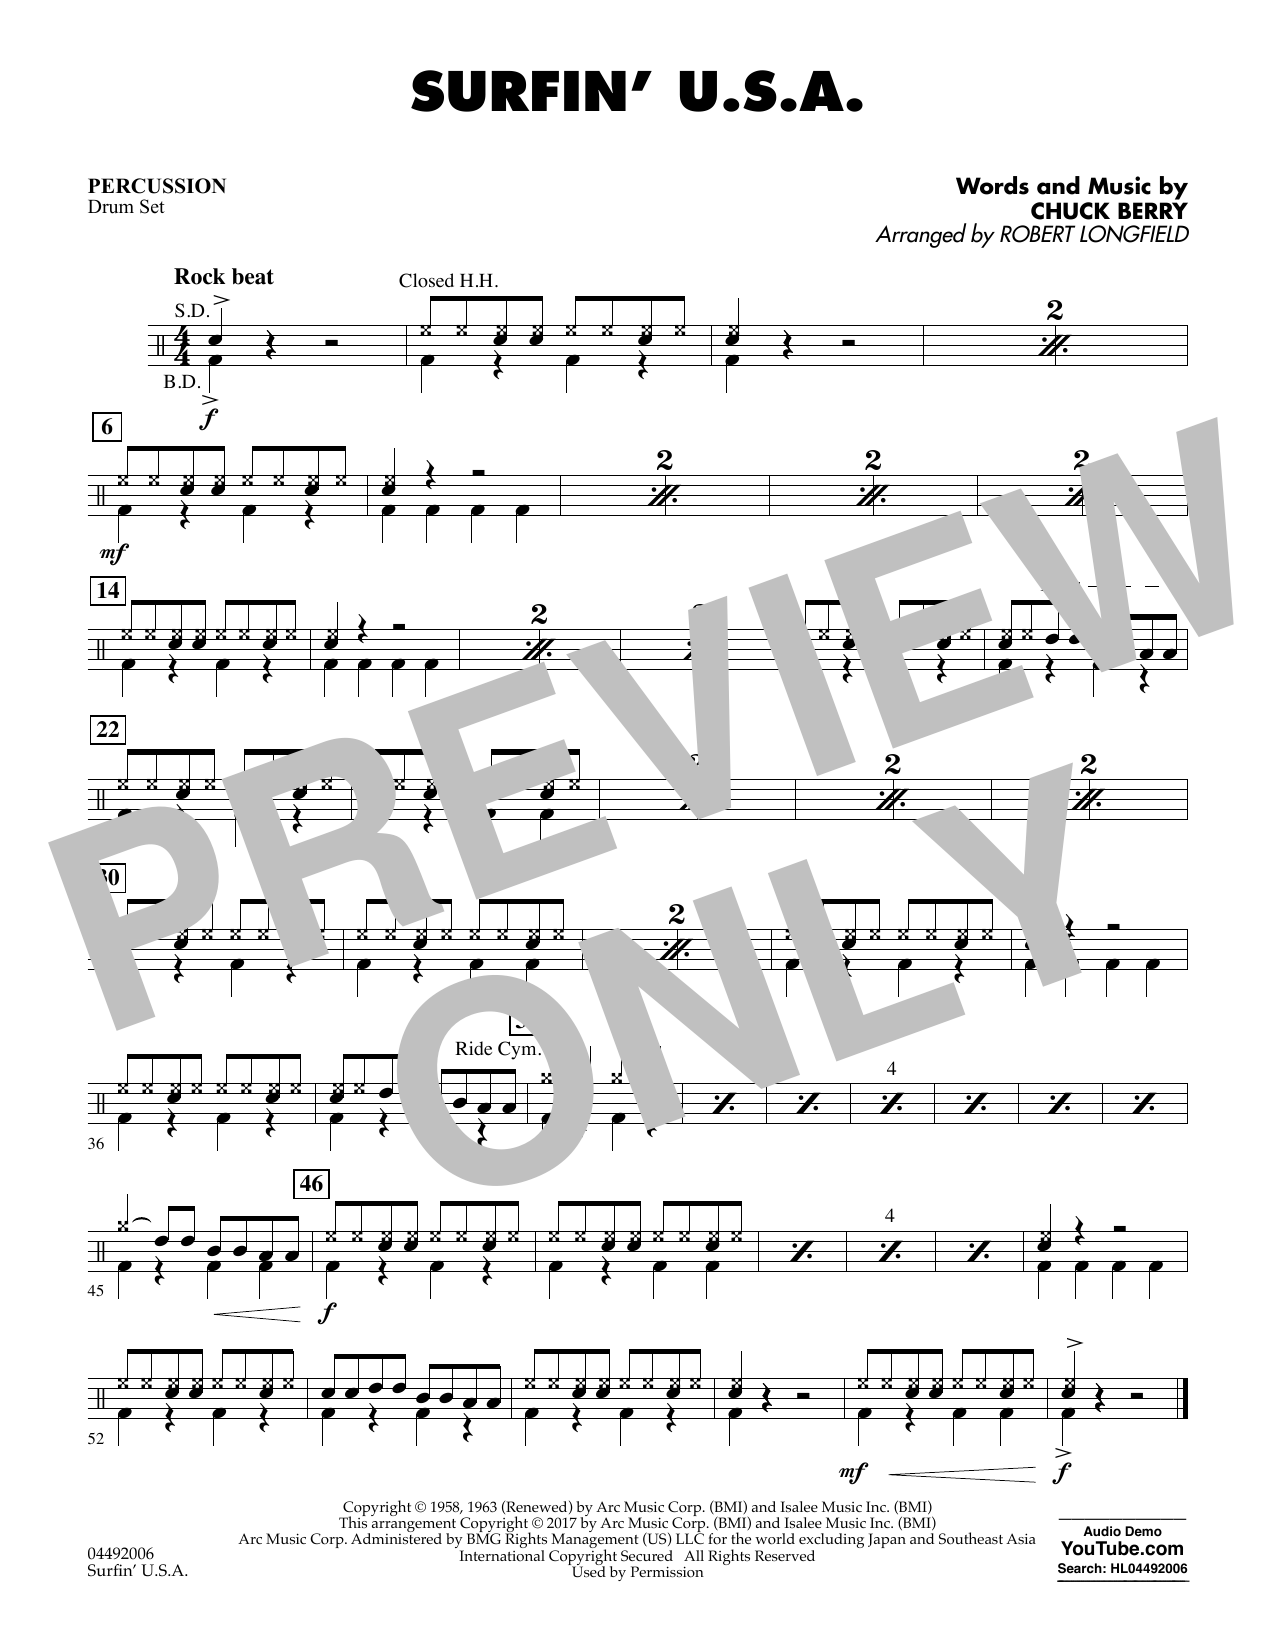 Sheet music digital files to print licensed chuck berry digital surfin usa percussion hexwebz Images